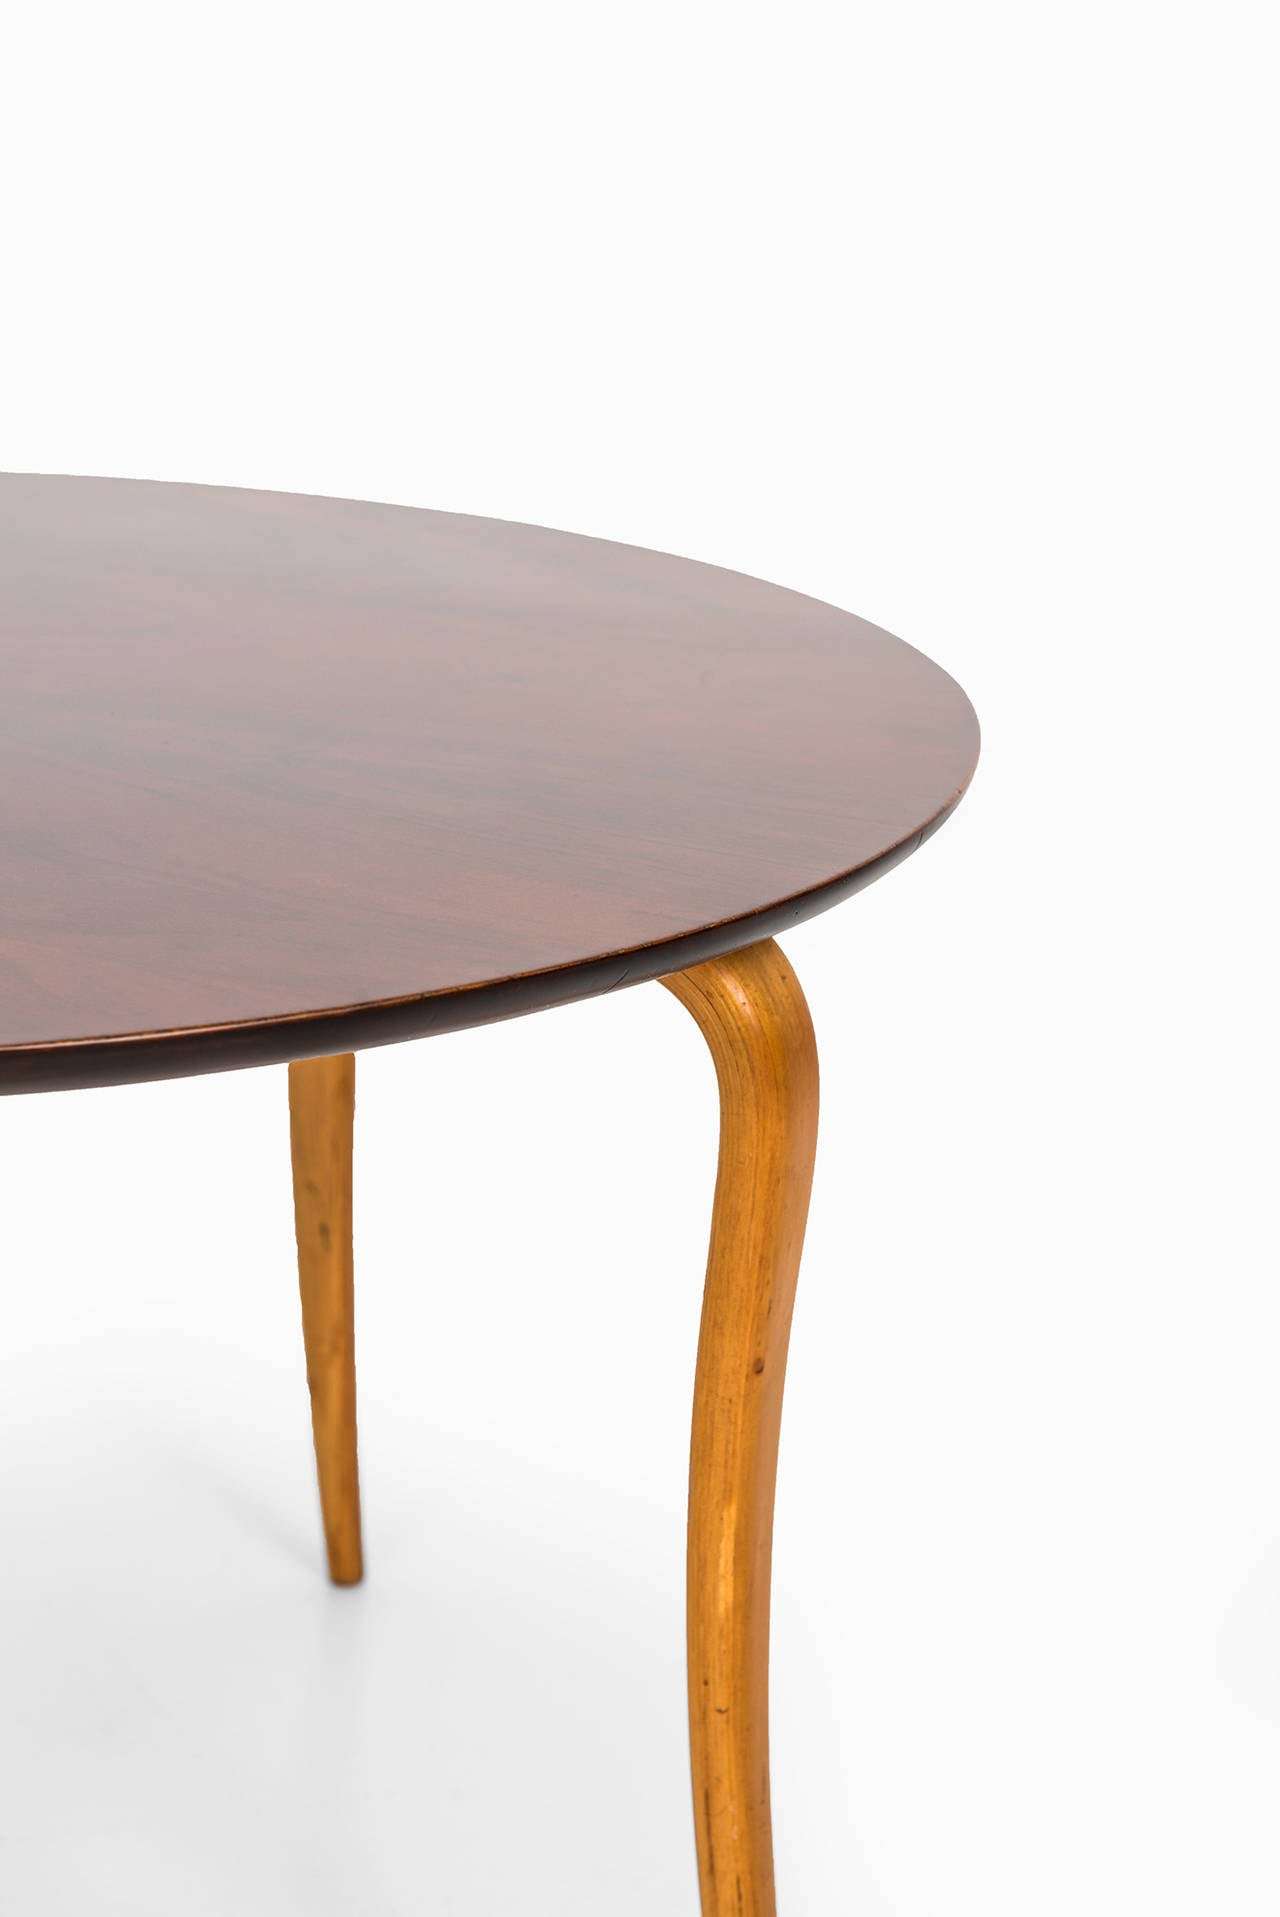 Sture b ohlsson coffee table in beech and mahogany for for Beech coffee table